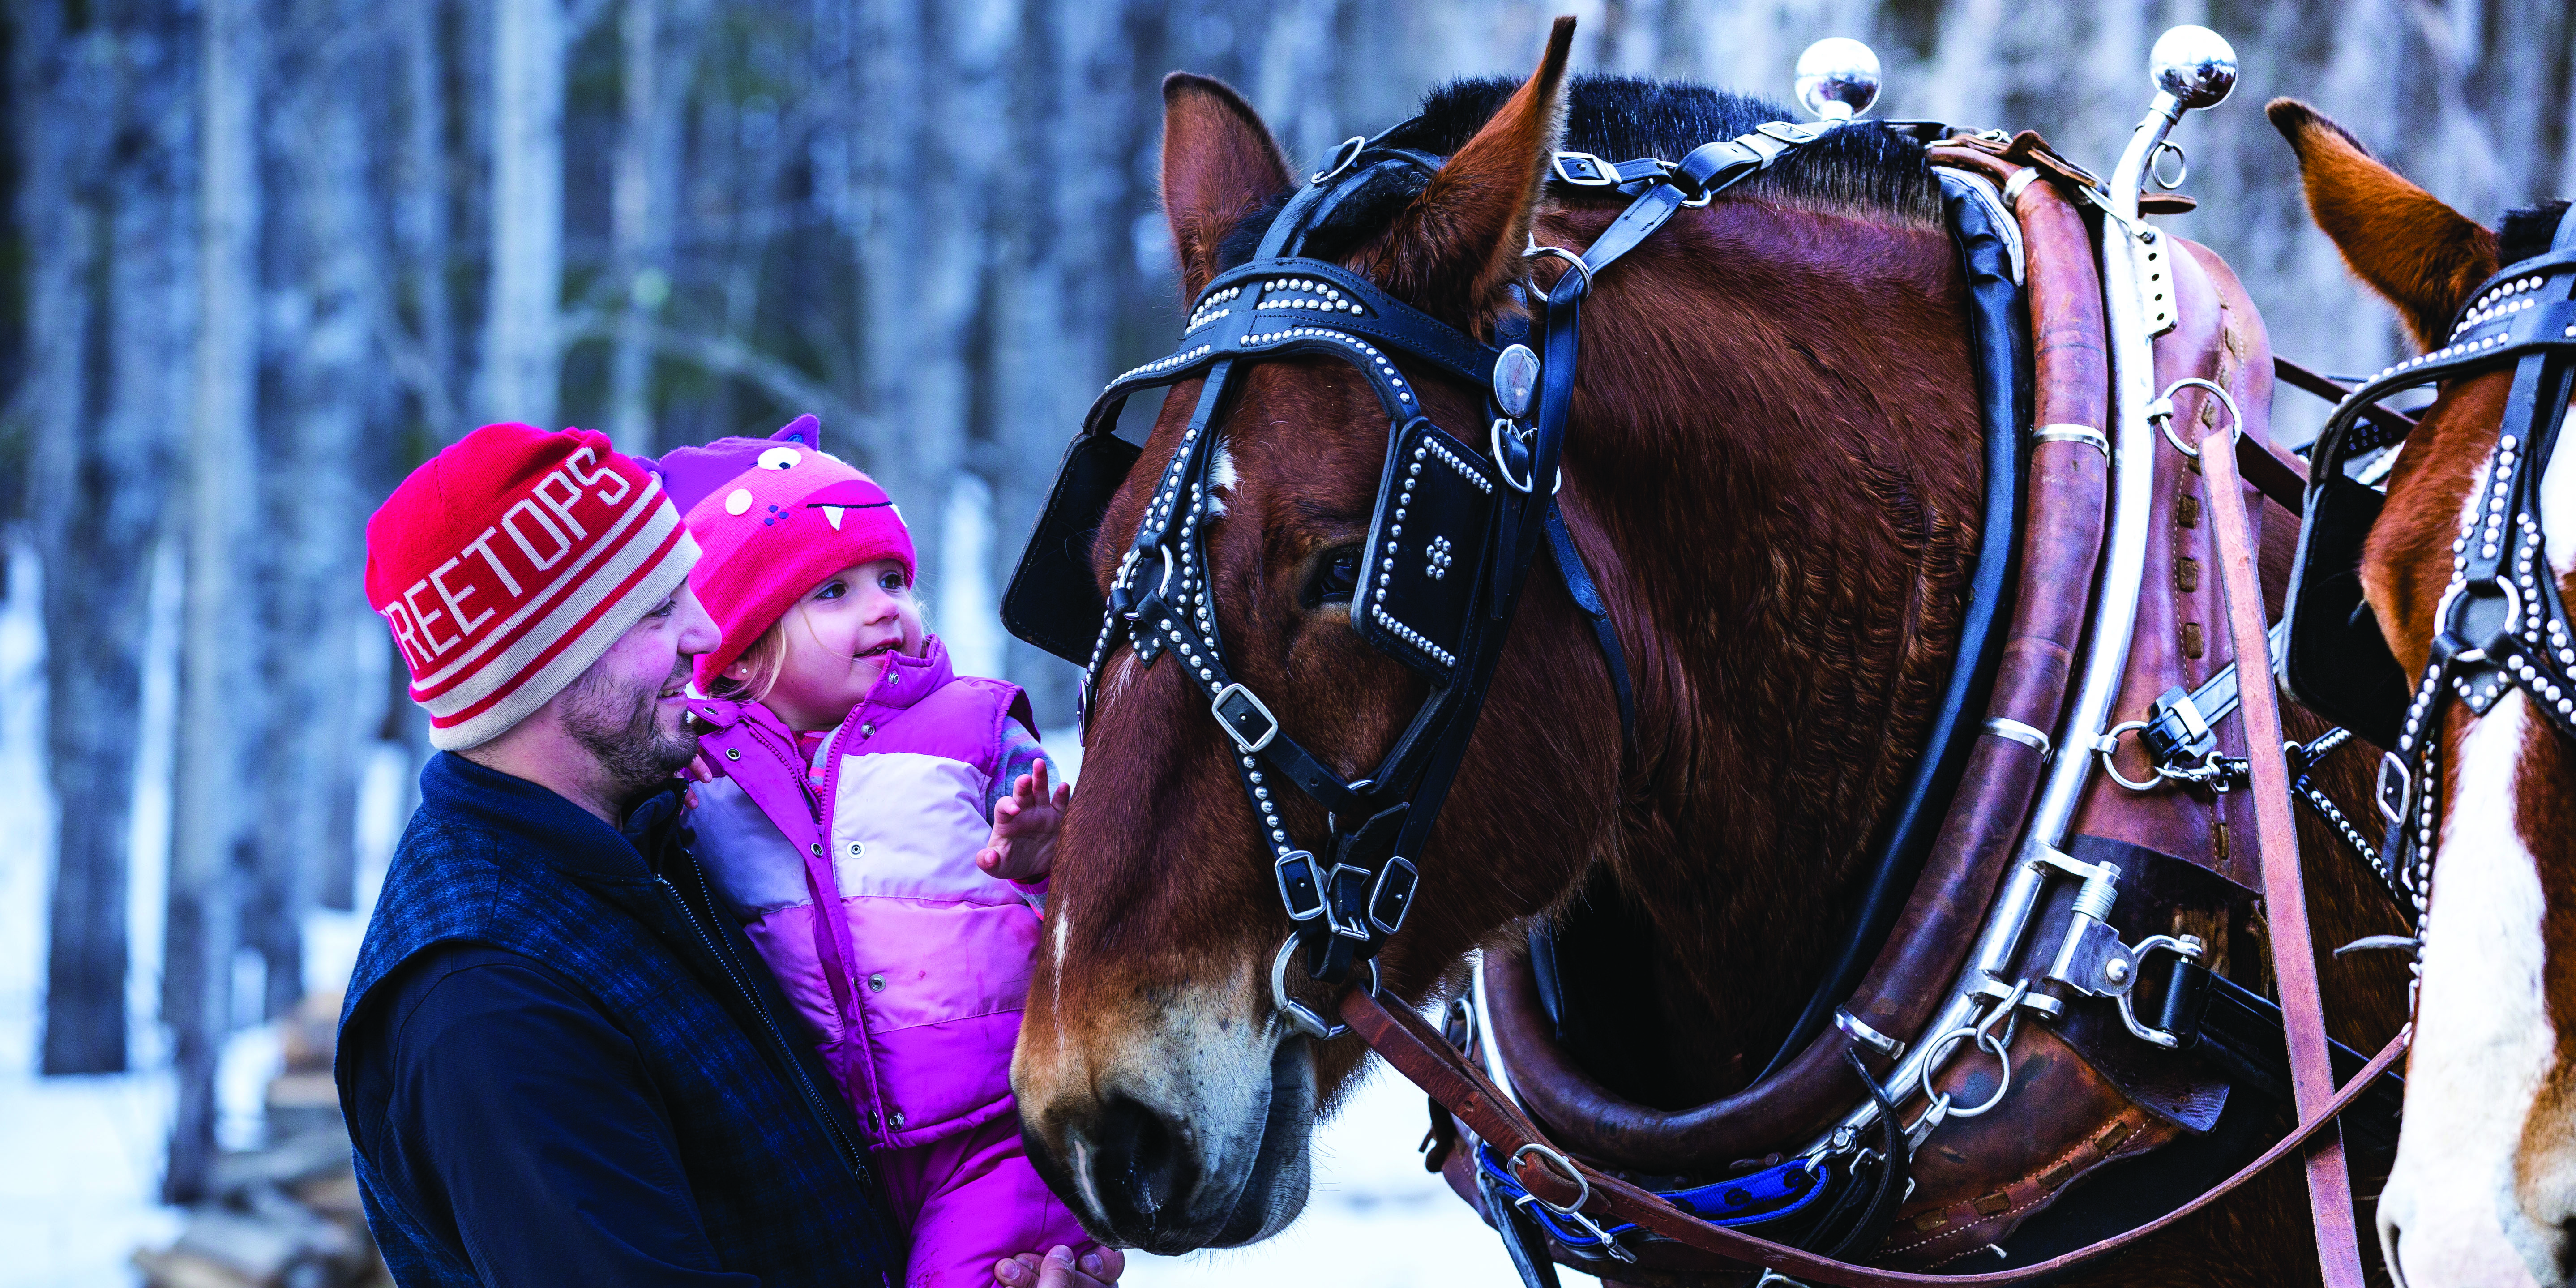 A man and child in winter gear pet a horse before a sleigh ride.